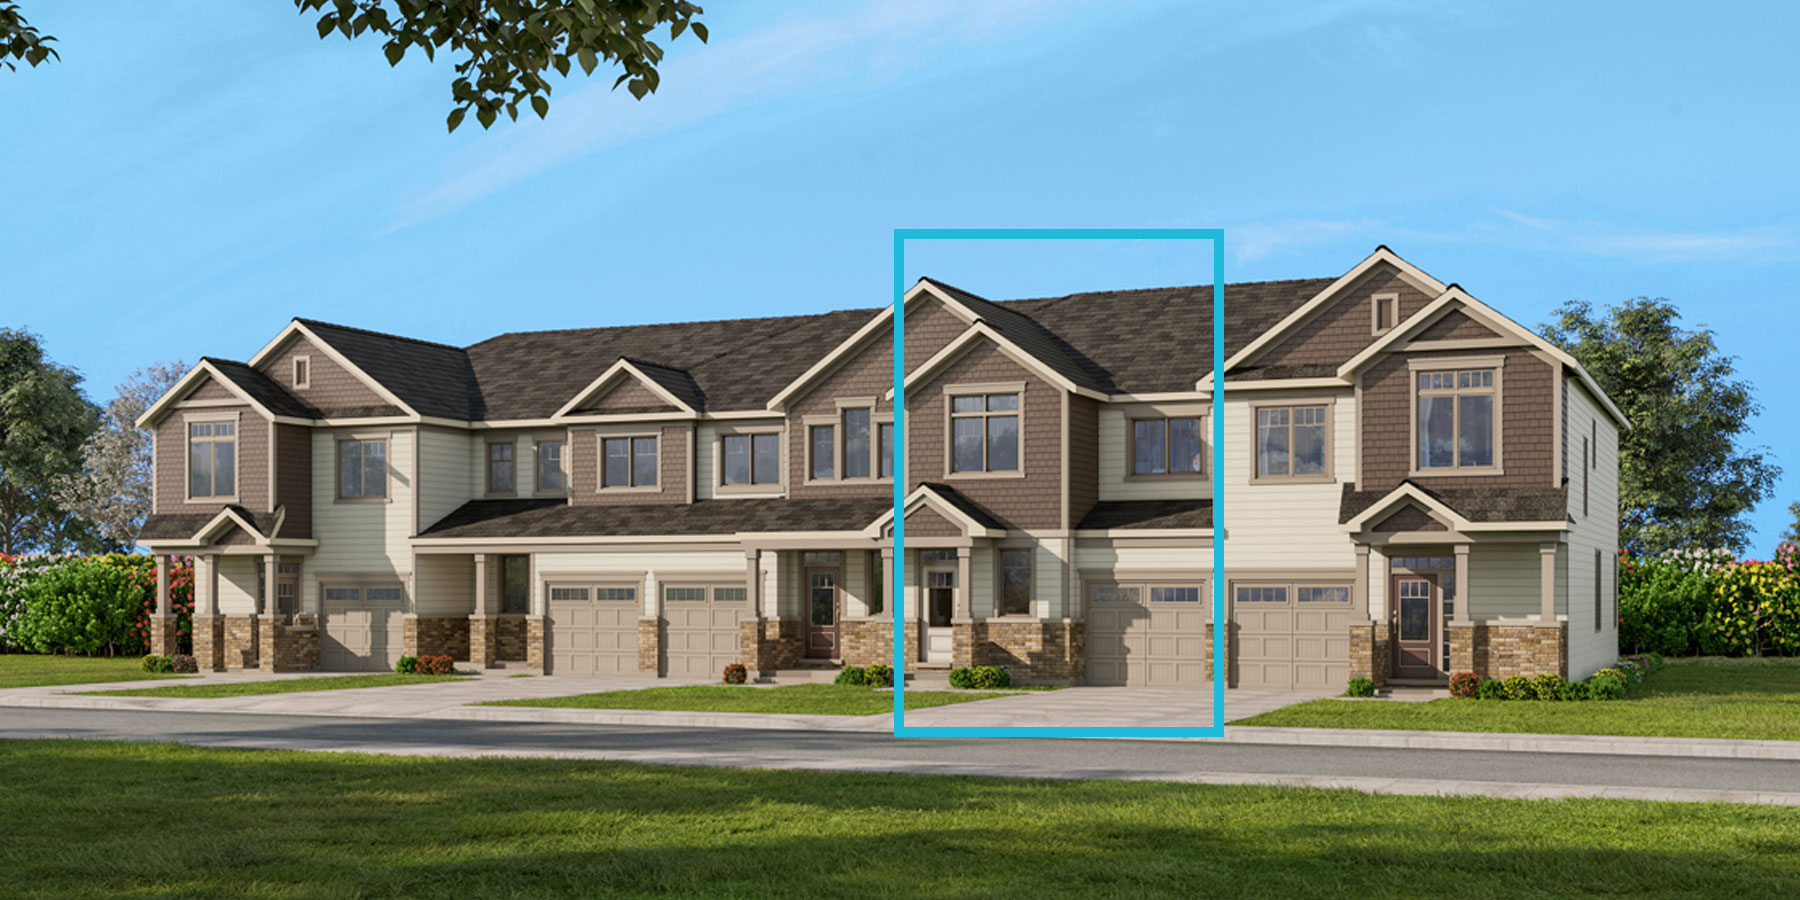 Connections In Kanata TownHomes in Kanata Ontario by Mattamy Homes